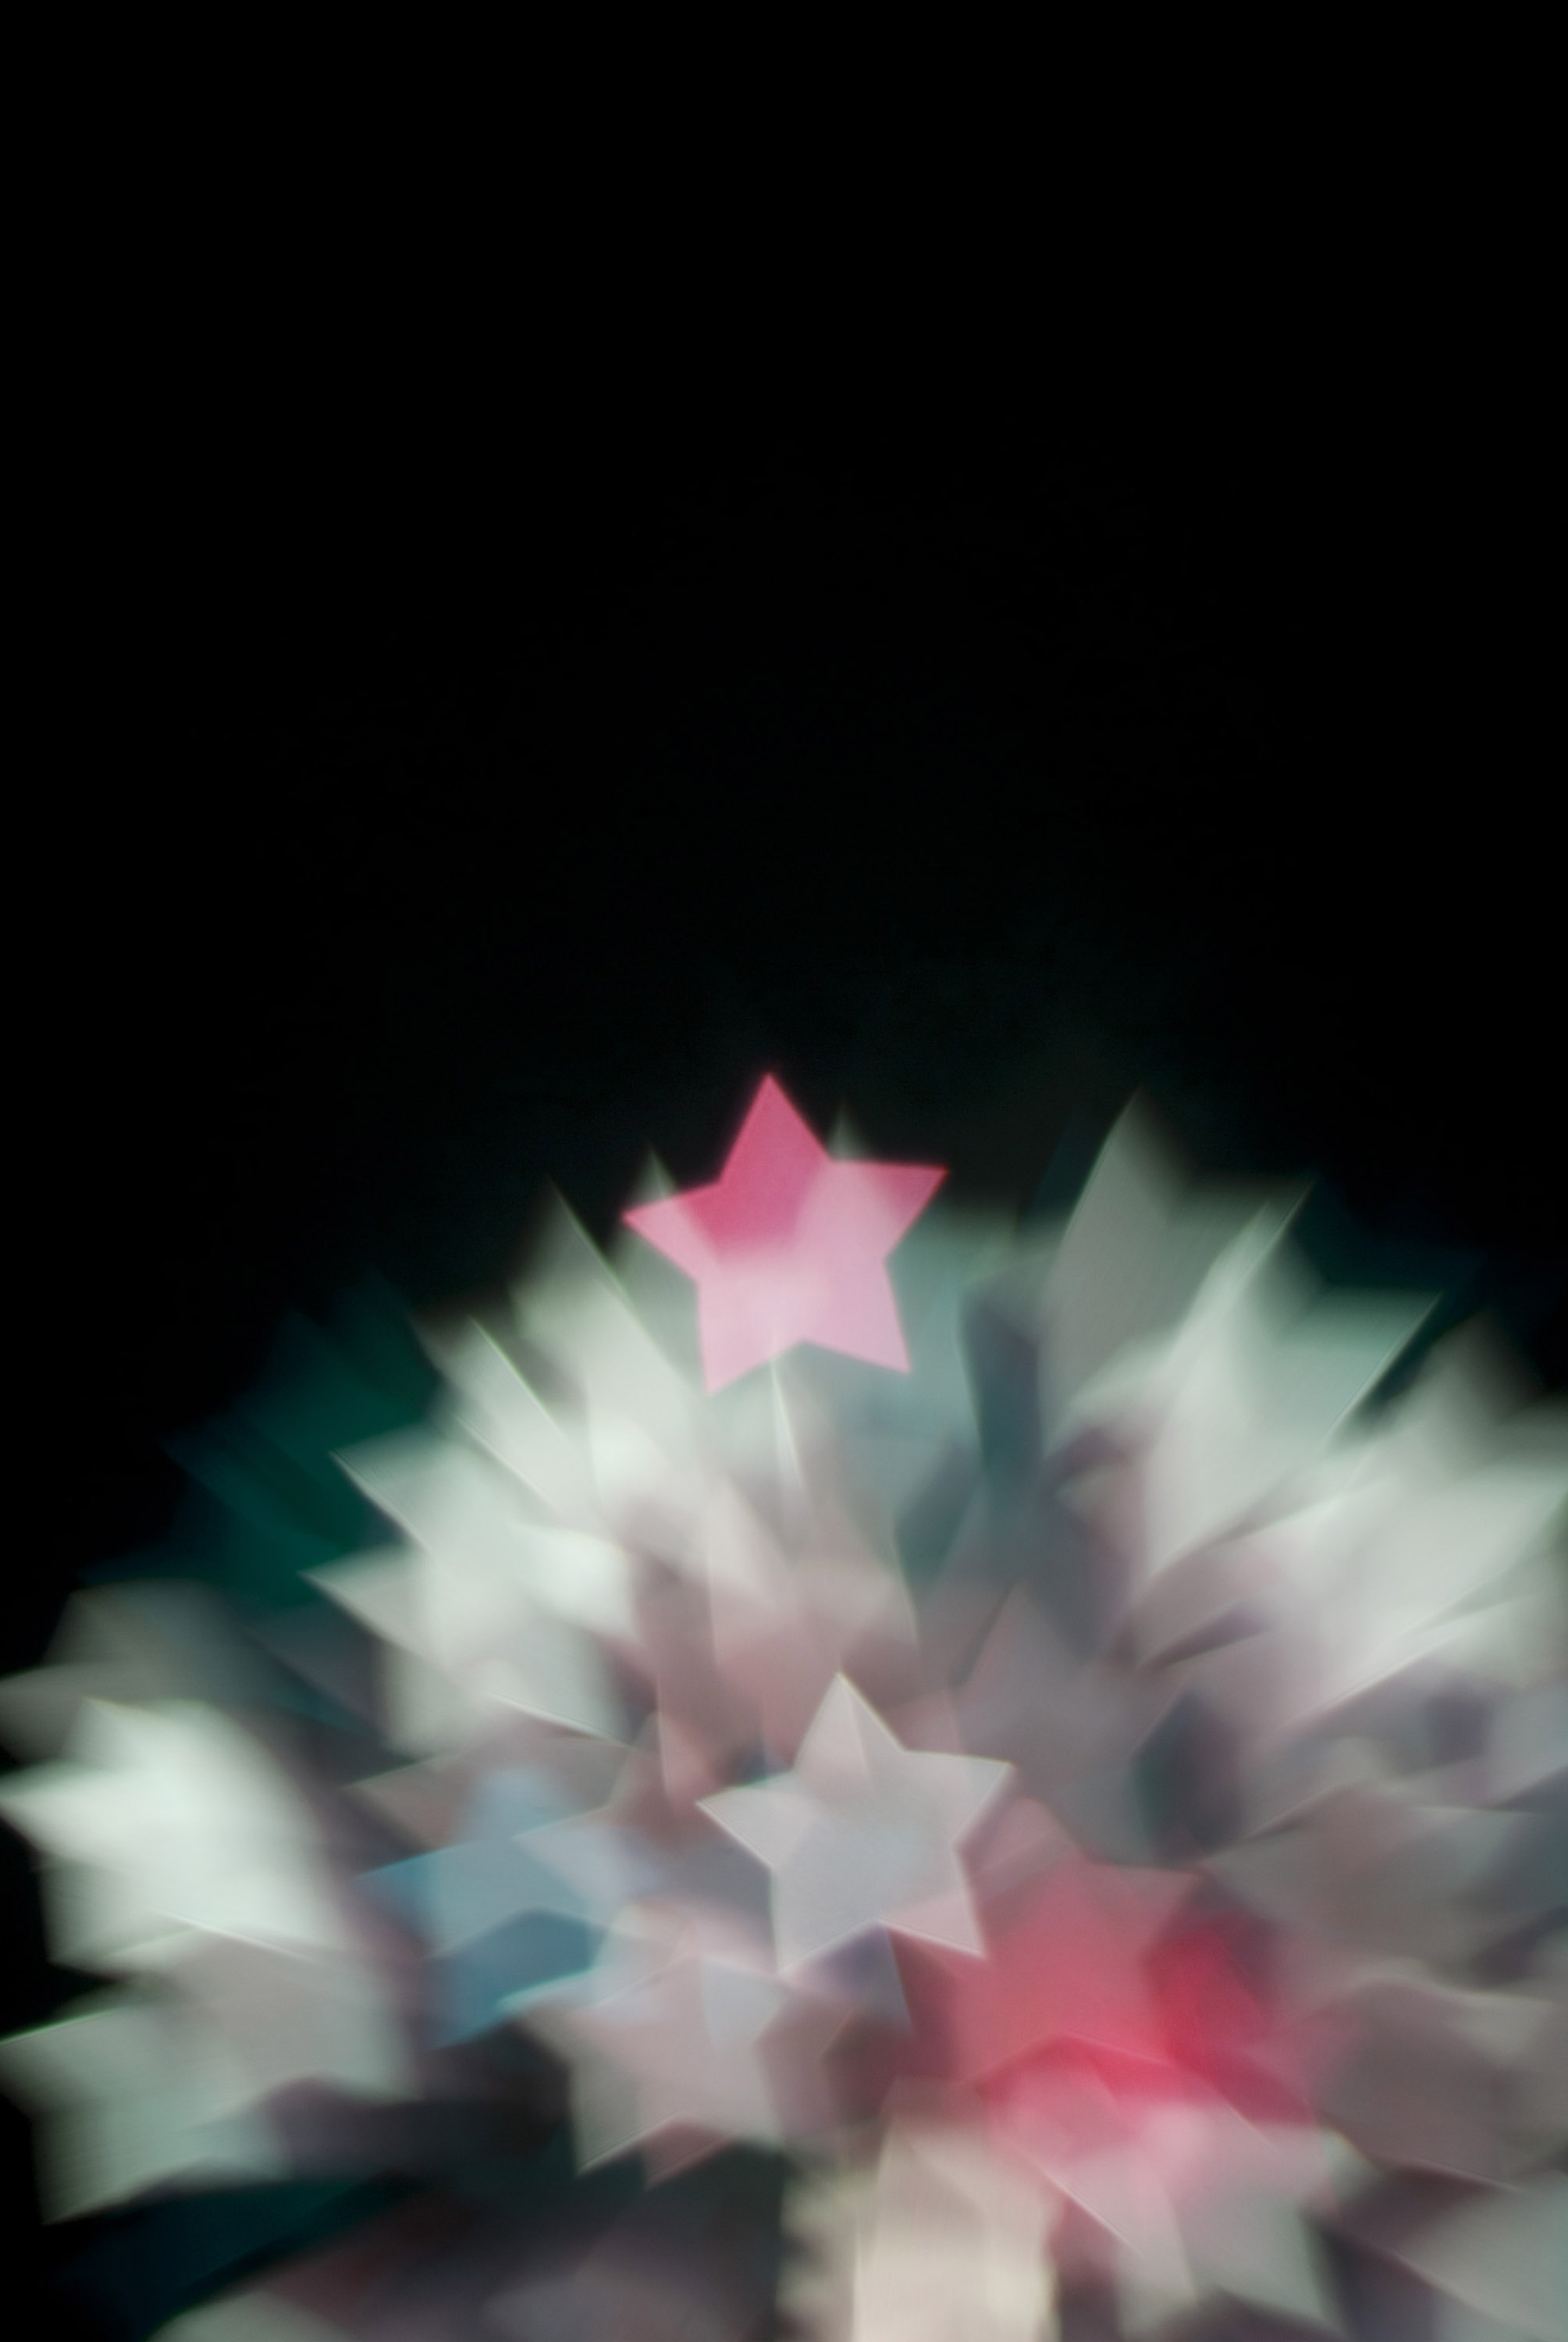 a defocused image of fireworks created with a star shaped gobo